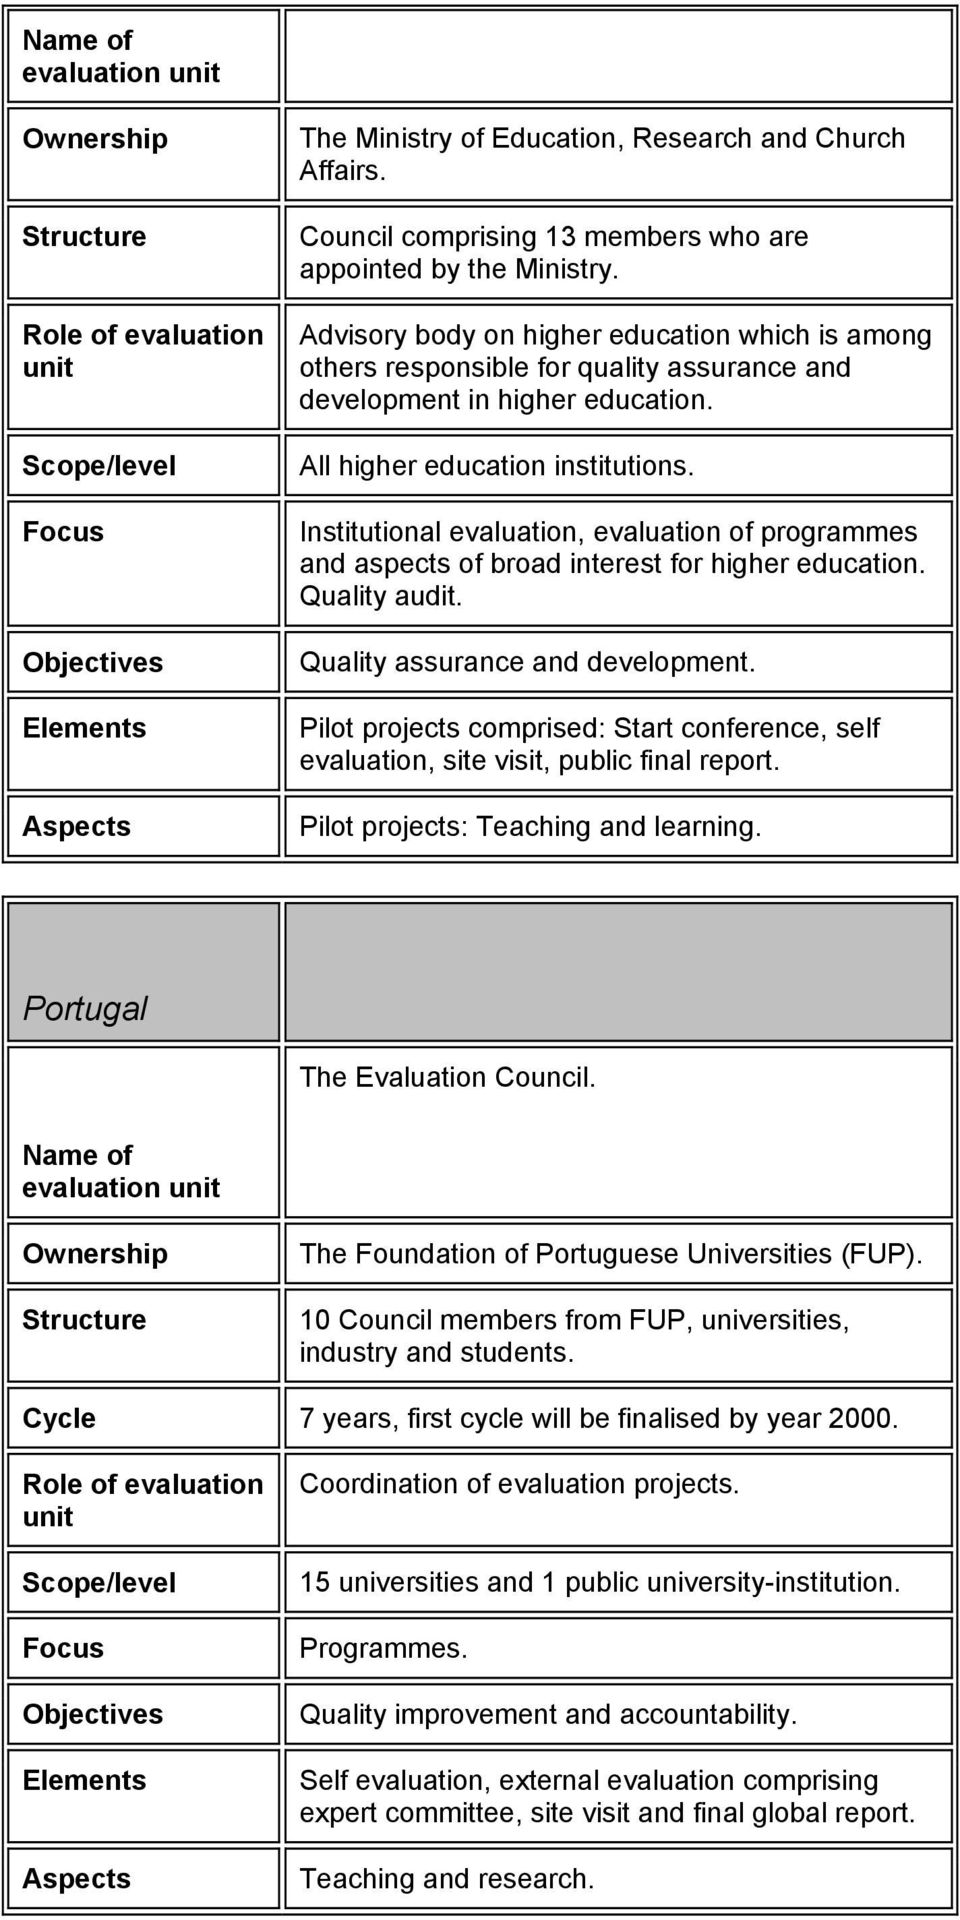 Institutional evaluation, evaluation of programmes and aspects of broad interest for higher education. Quality audit. Quality assurance and development.